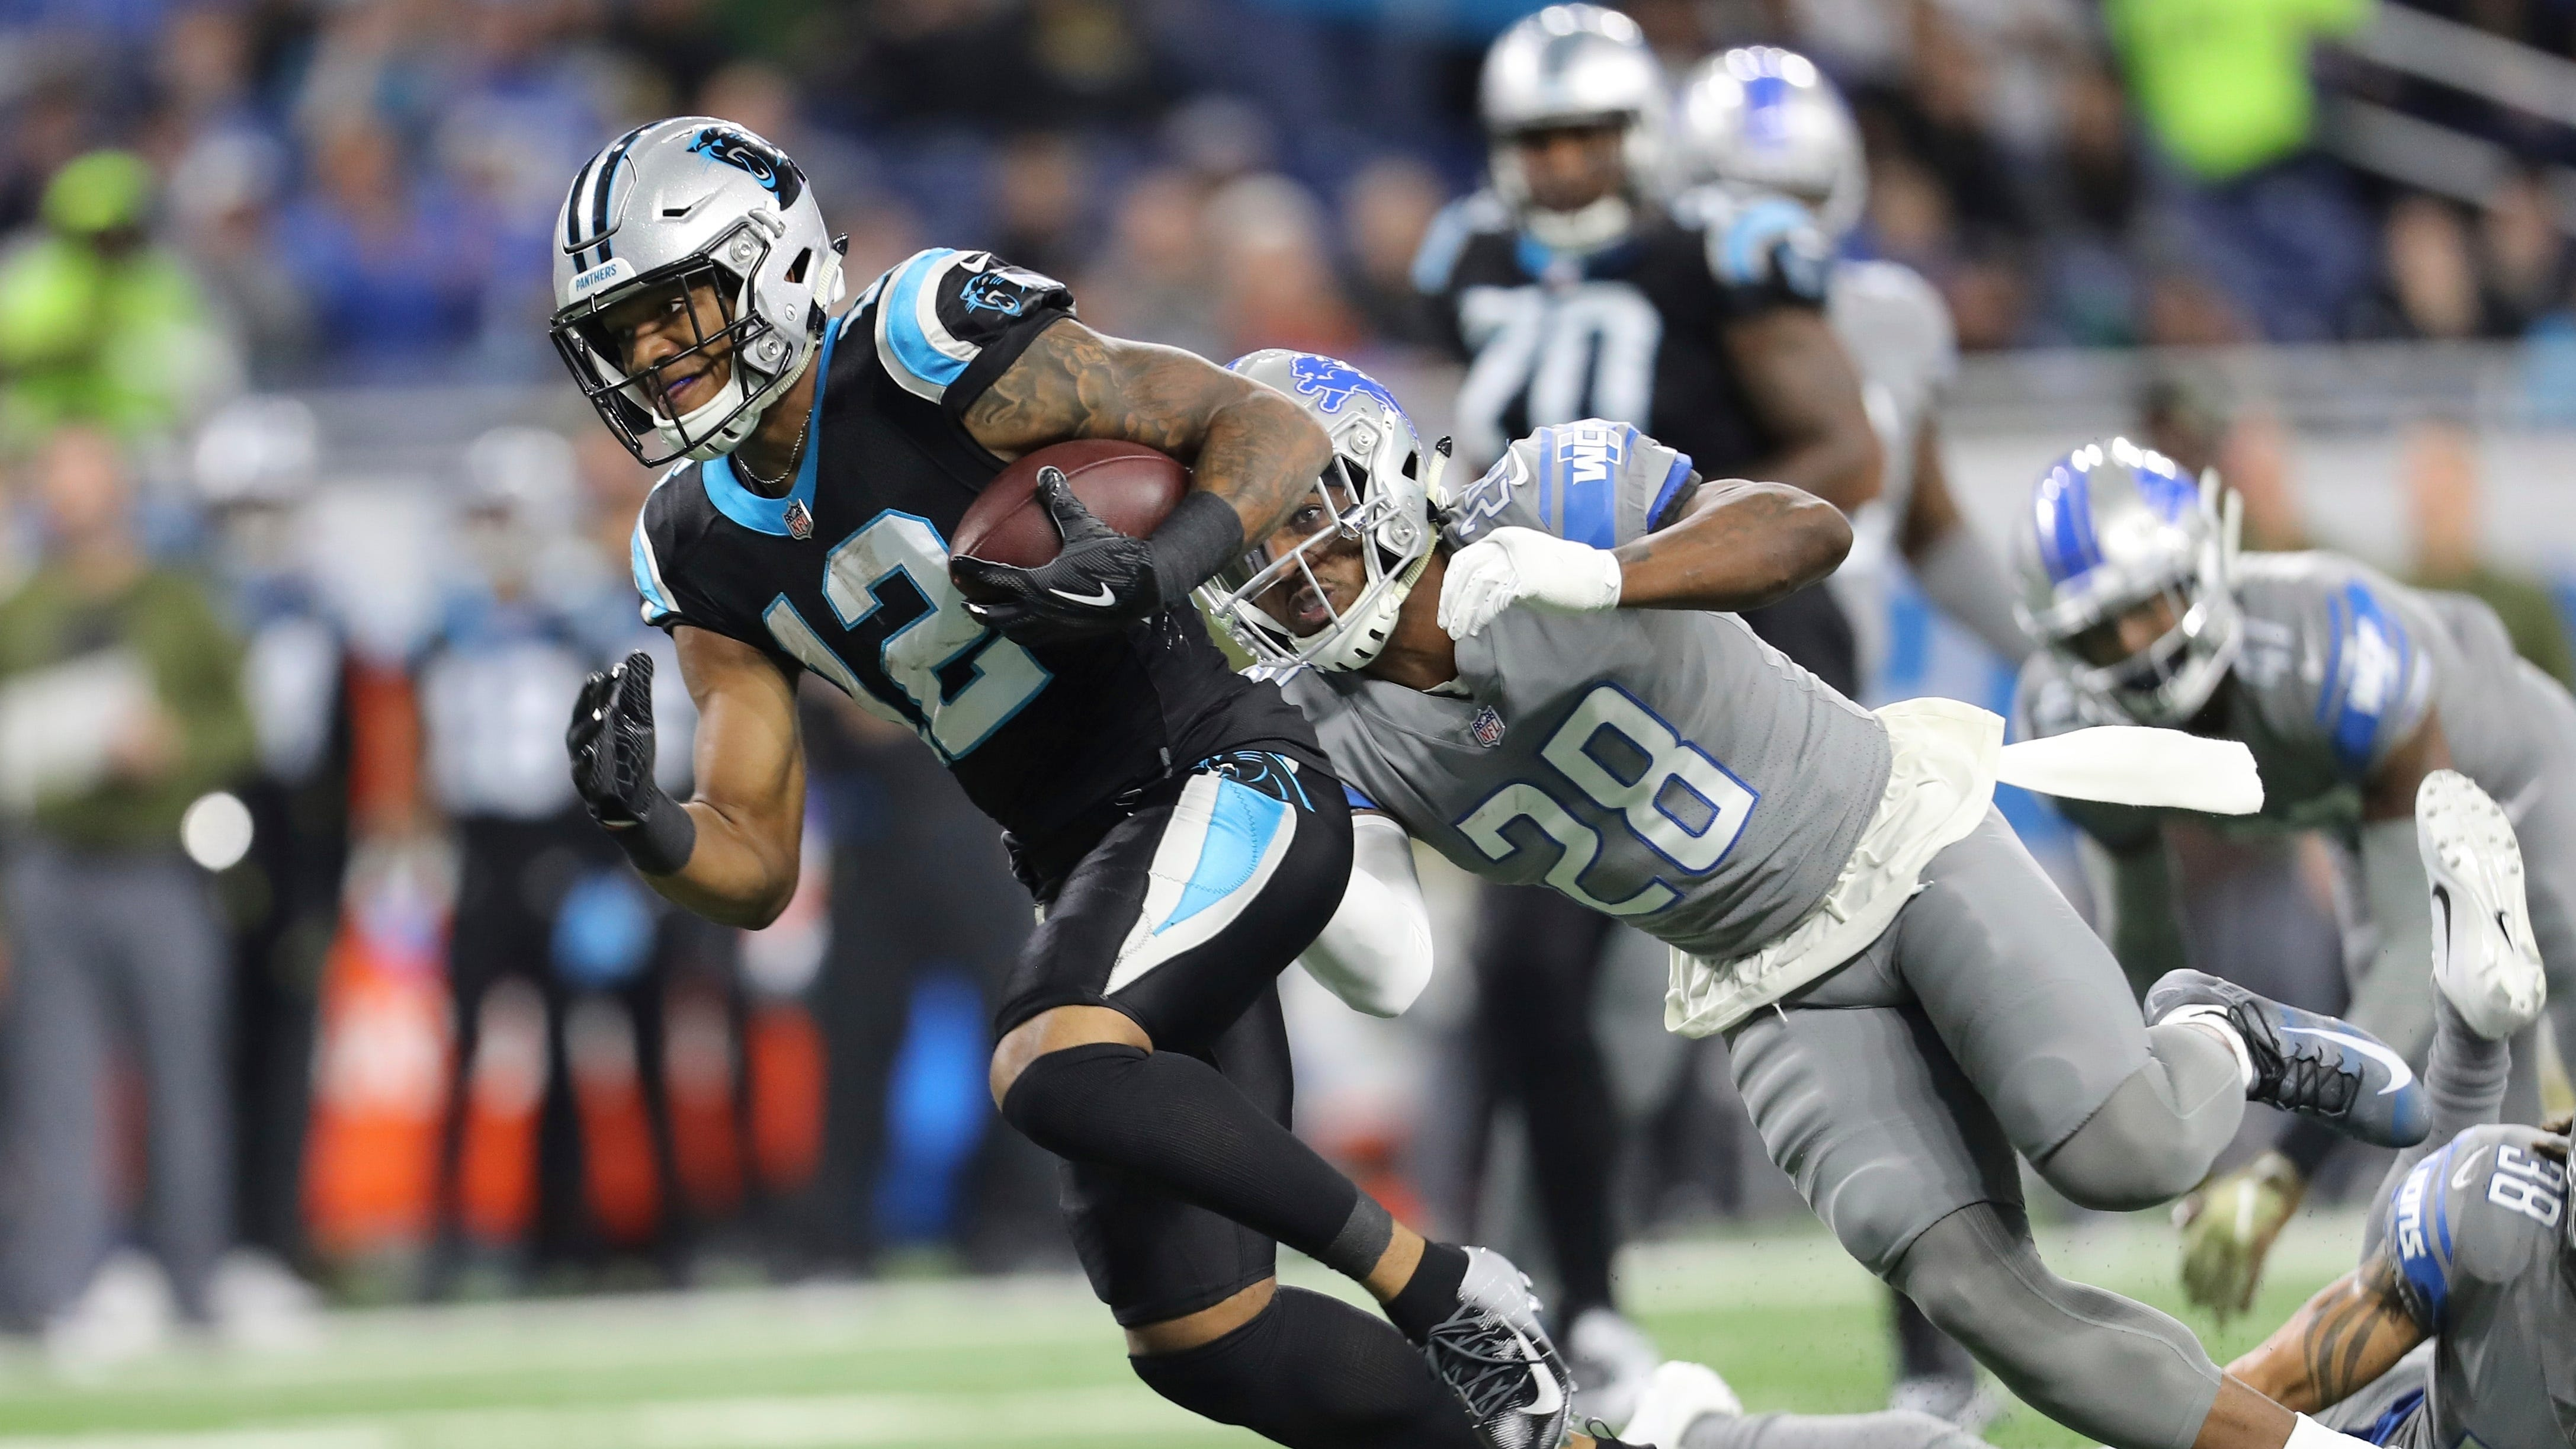 Carolina Panthers wide receiver DJ Moore is chased by Detroit Lions strong safety Quandre Diggs during the first quarter.